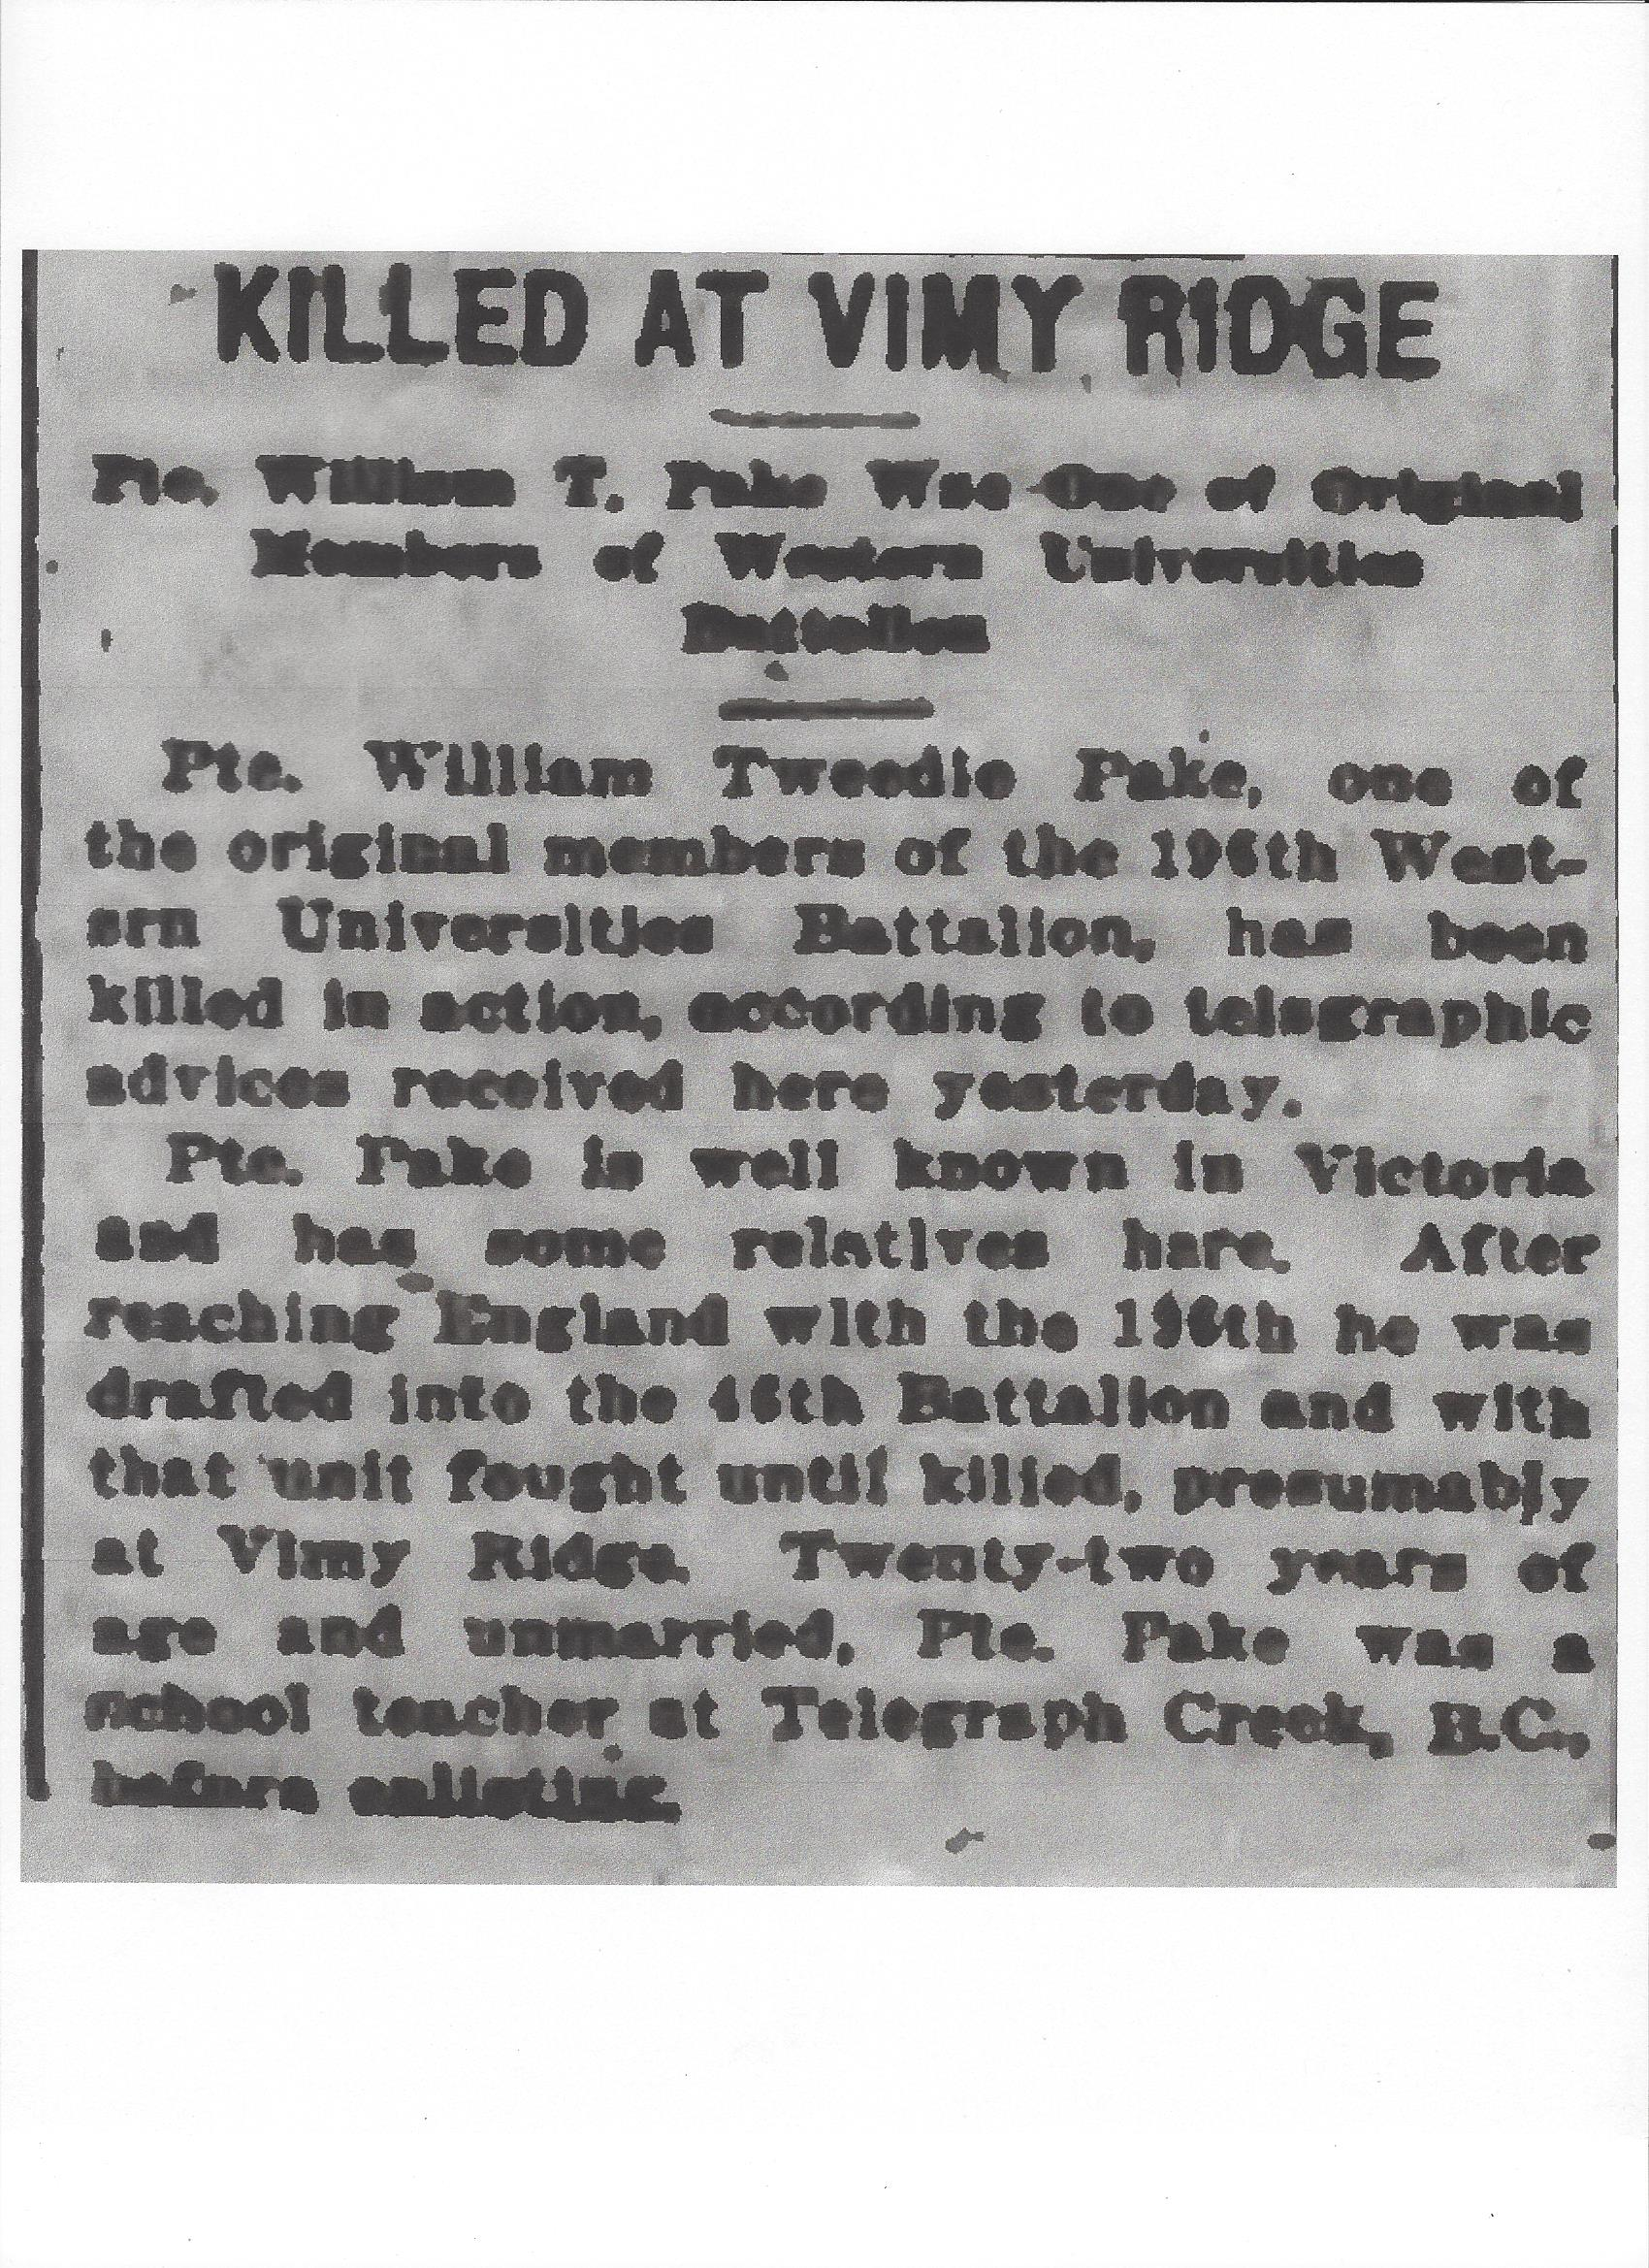 Newspaper clipping– From the Daily Colonist of April 17, 1917. Image taken from web address of http://archive.org/stream/dailycolonist59y110uvic#page/n0/mode/1up